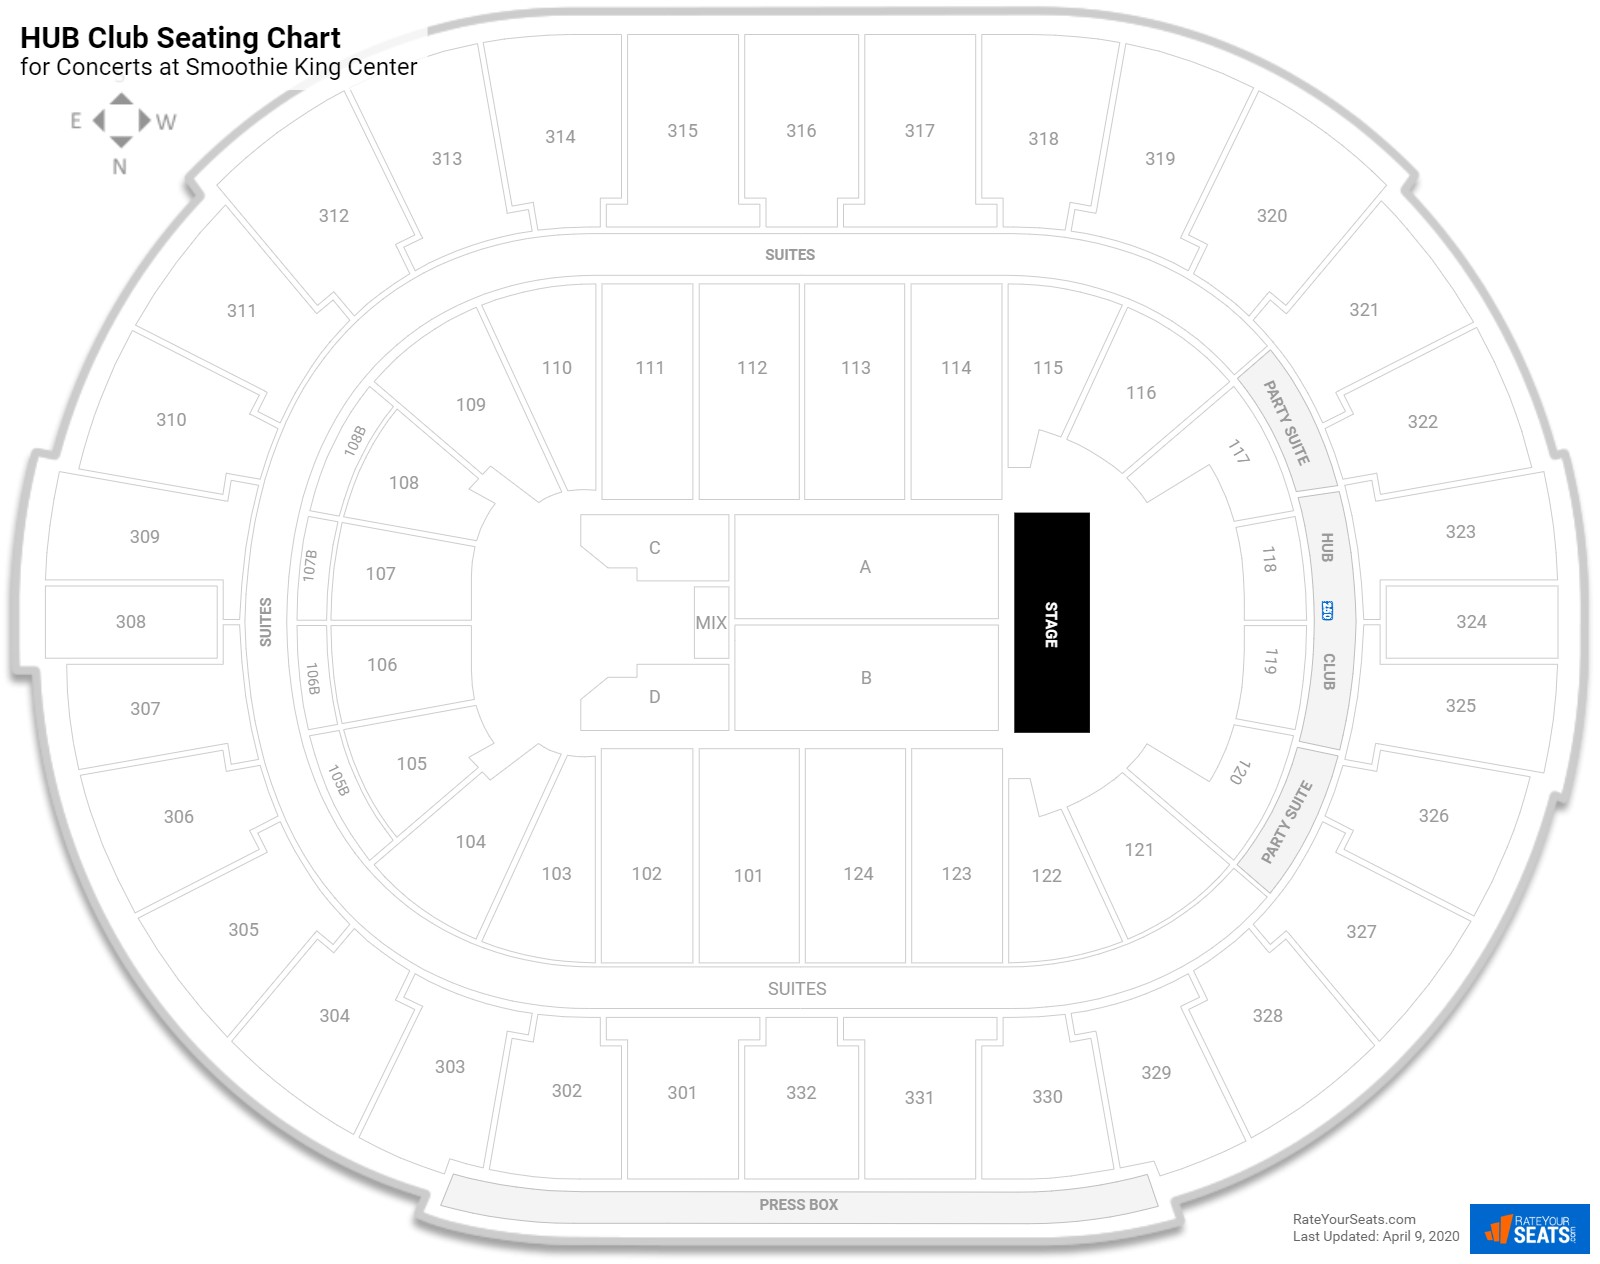 Smoothie King Center Concert Seating Guide